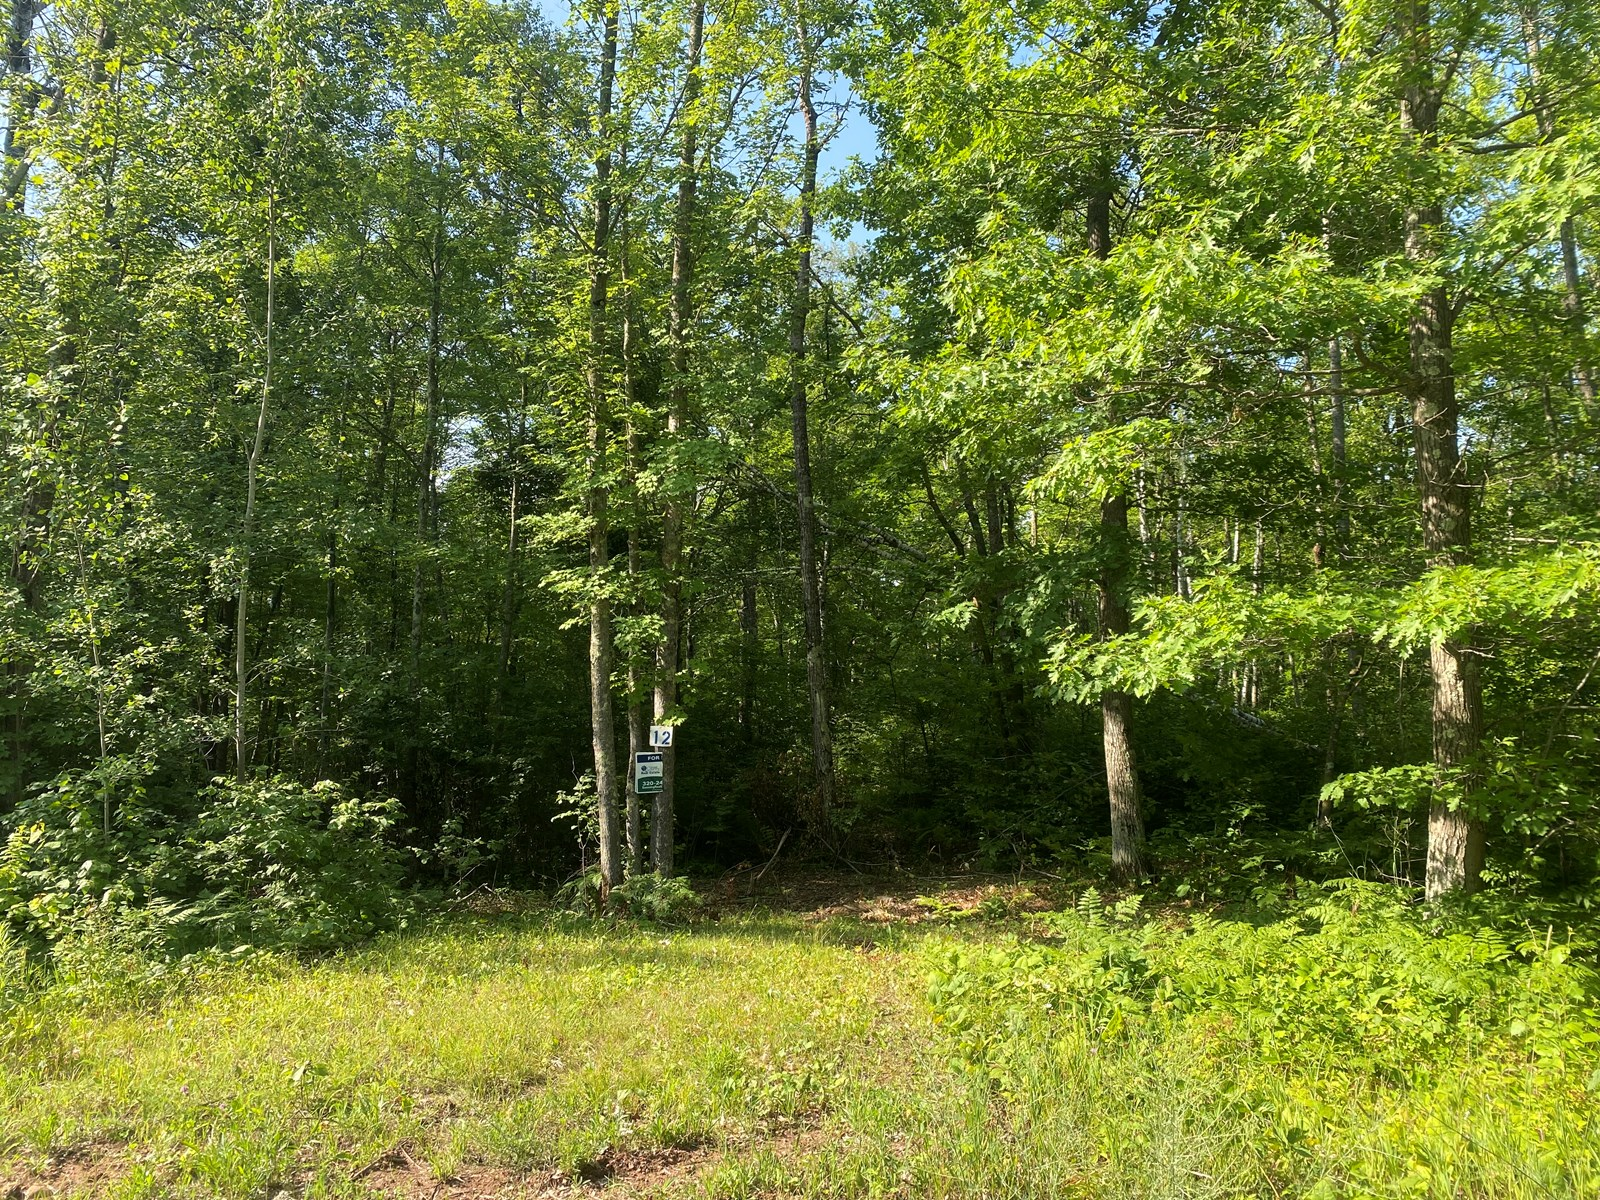 Ready-To-Build 2.6 Acre Lot For Sale In Sandstone MN